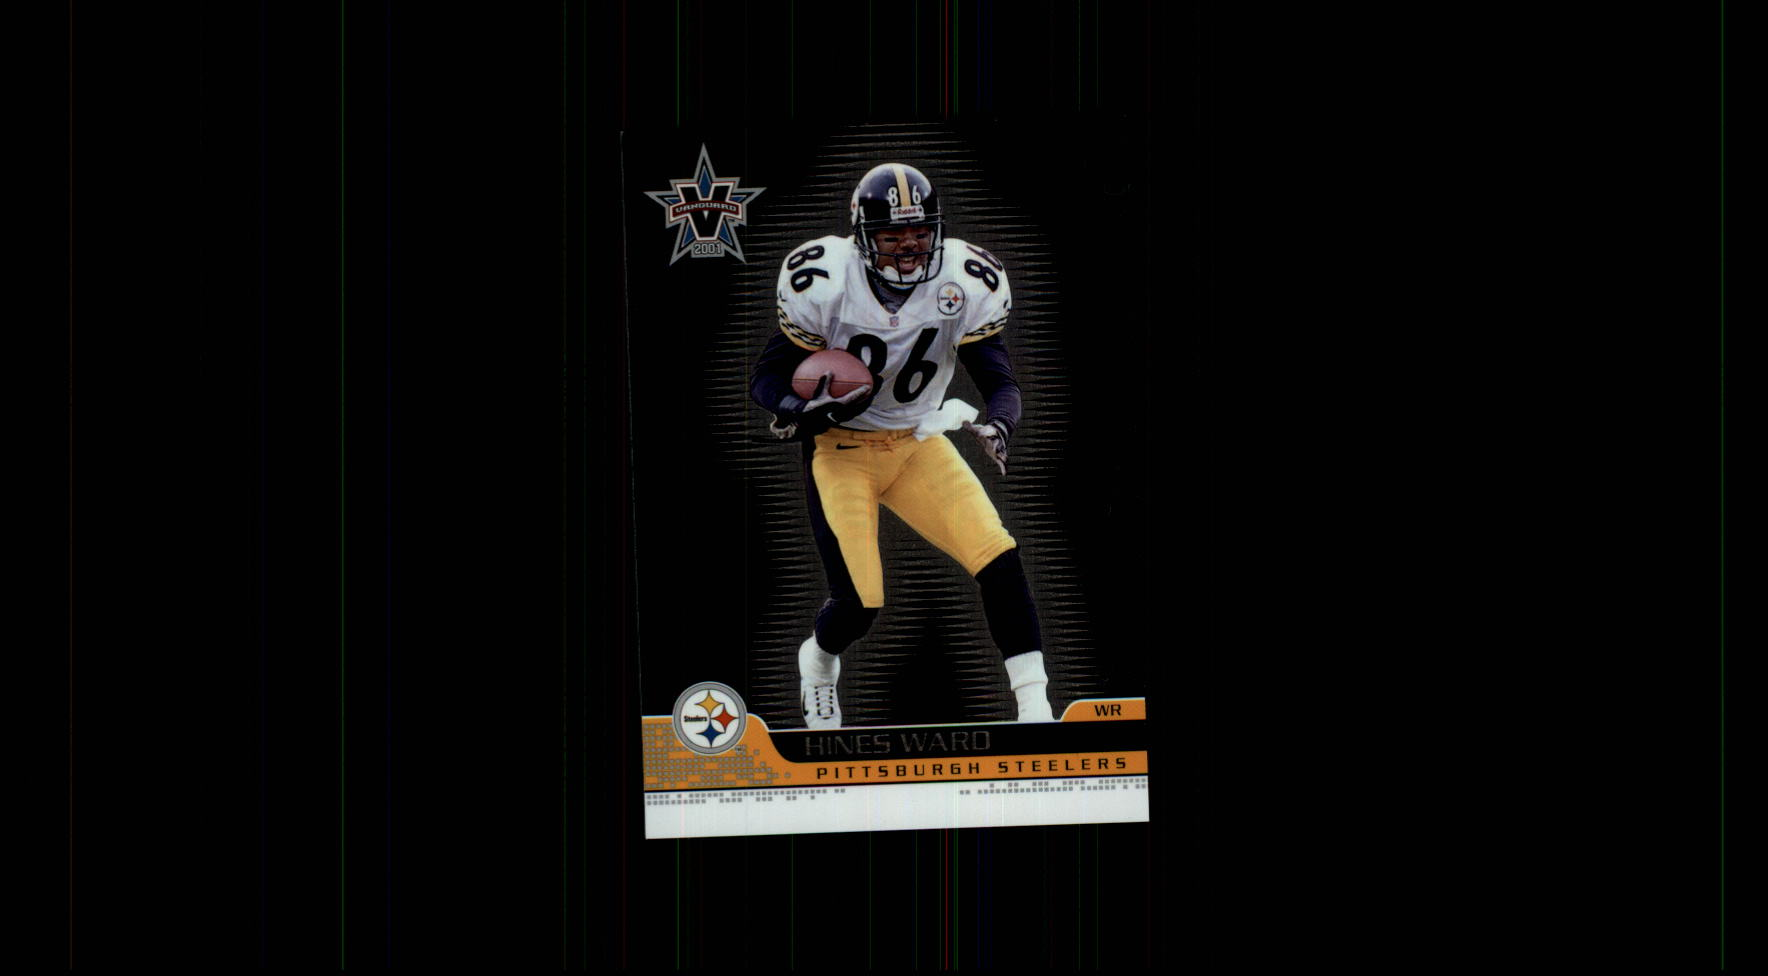 2001 Vanguard #76 Hines Ward